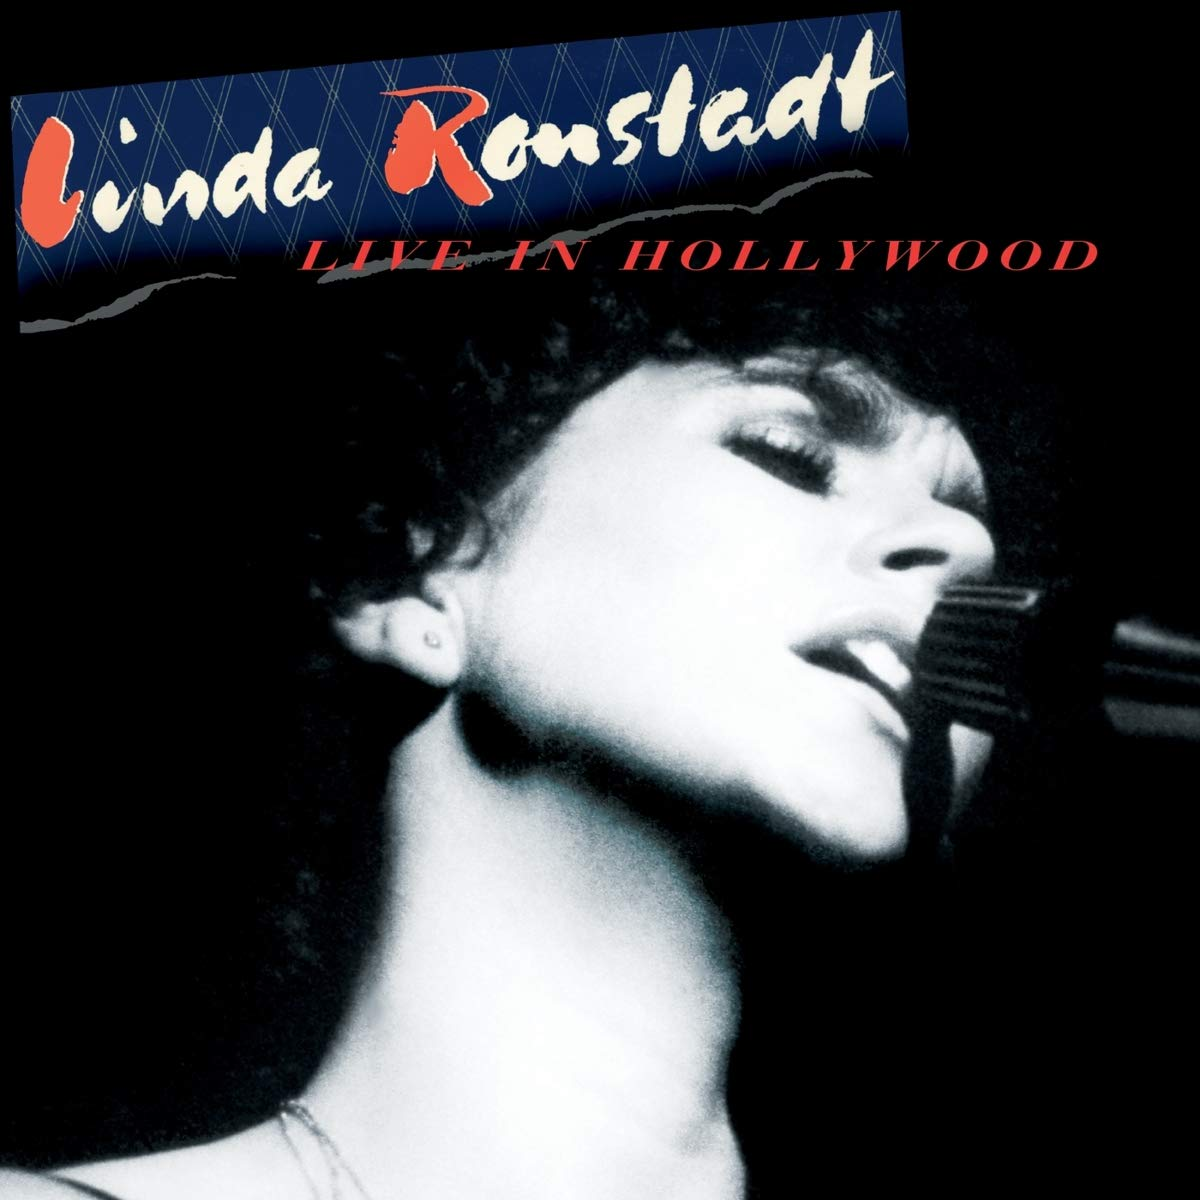 лучшая цена Linda Ronstadt. Live In Hollywood